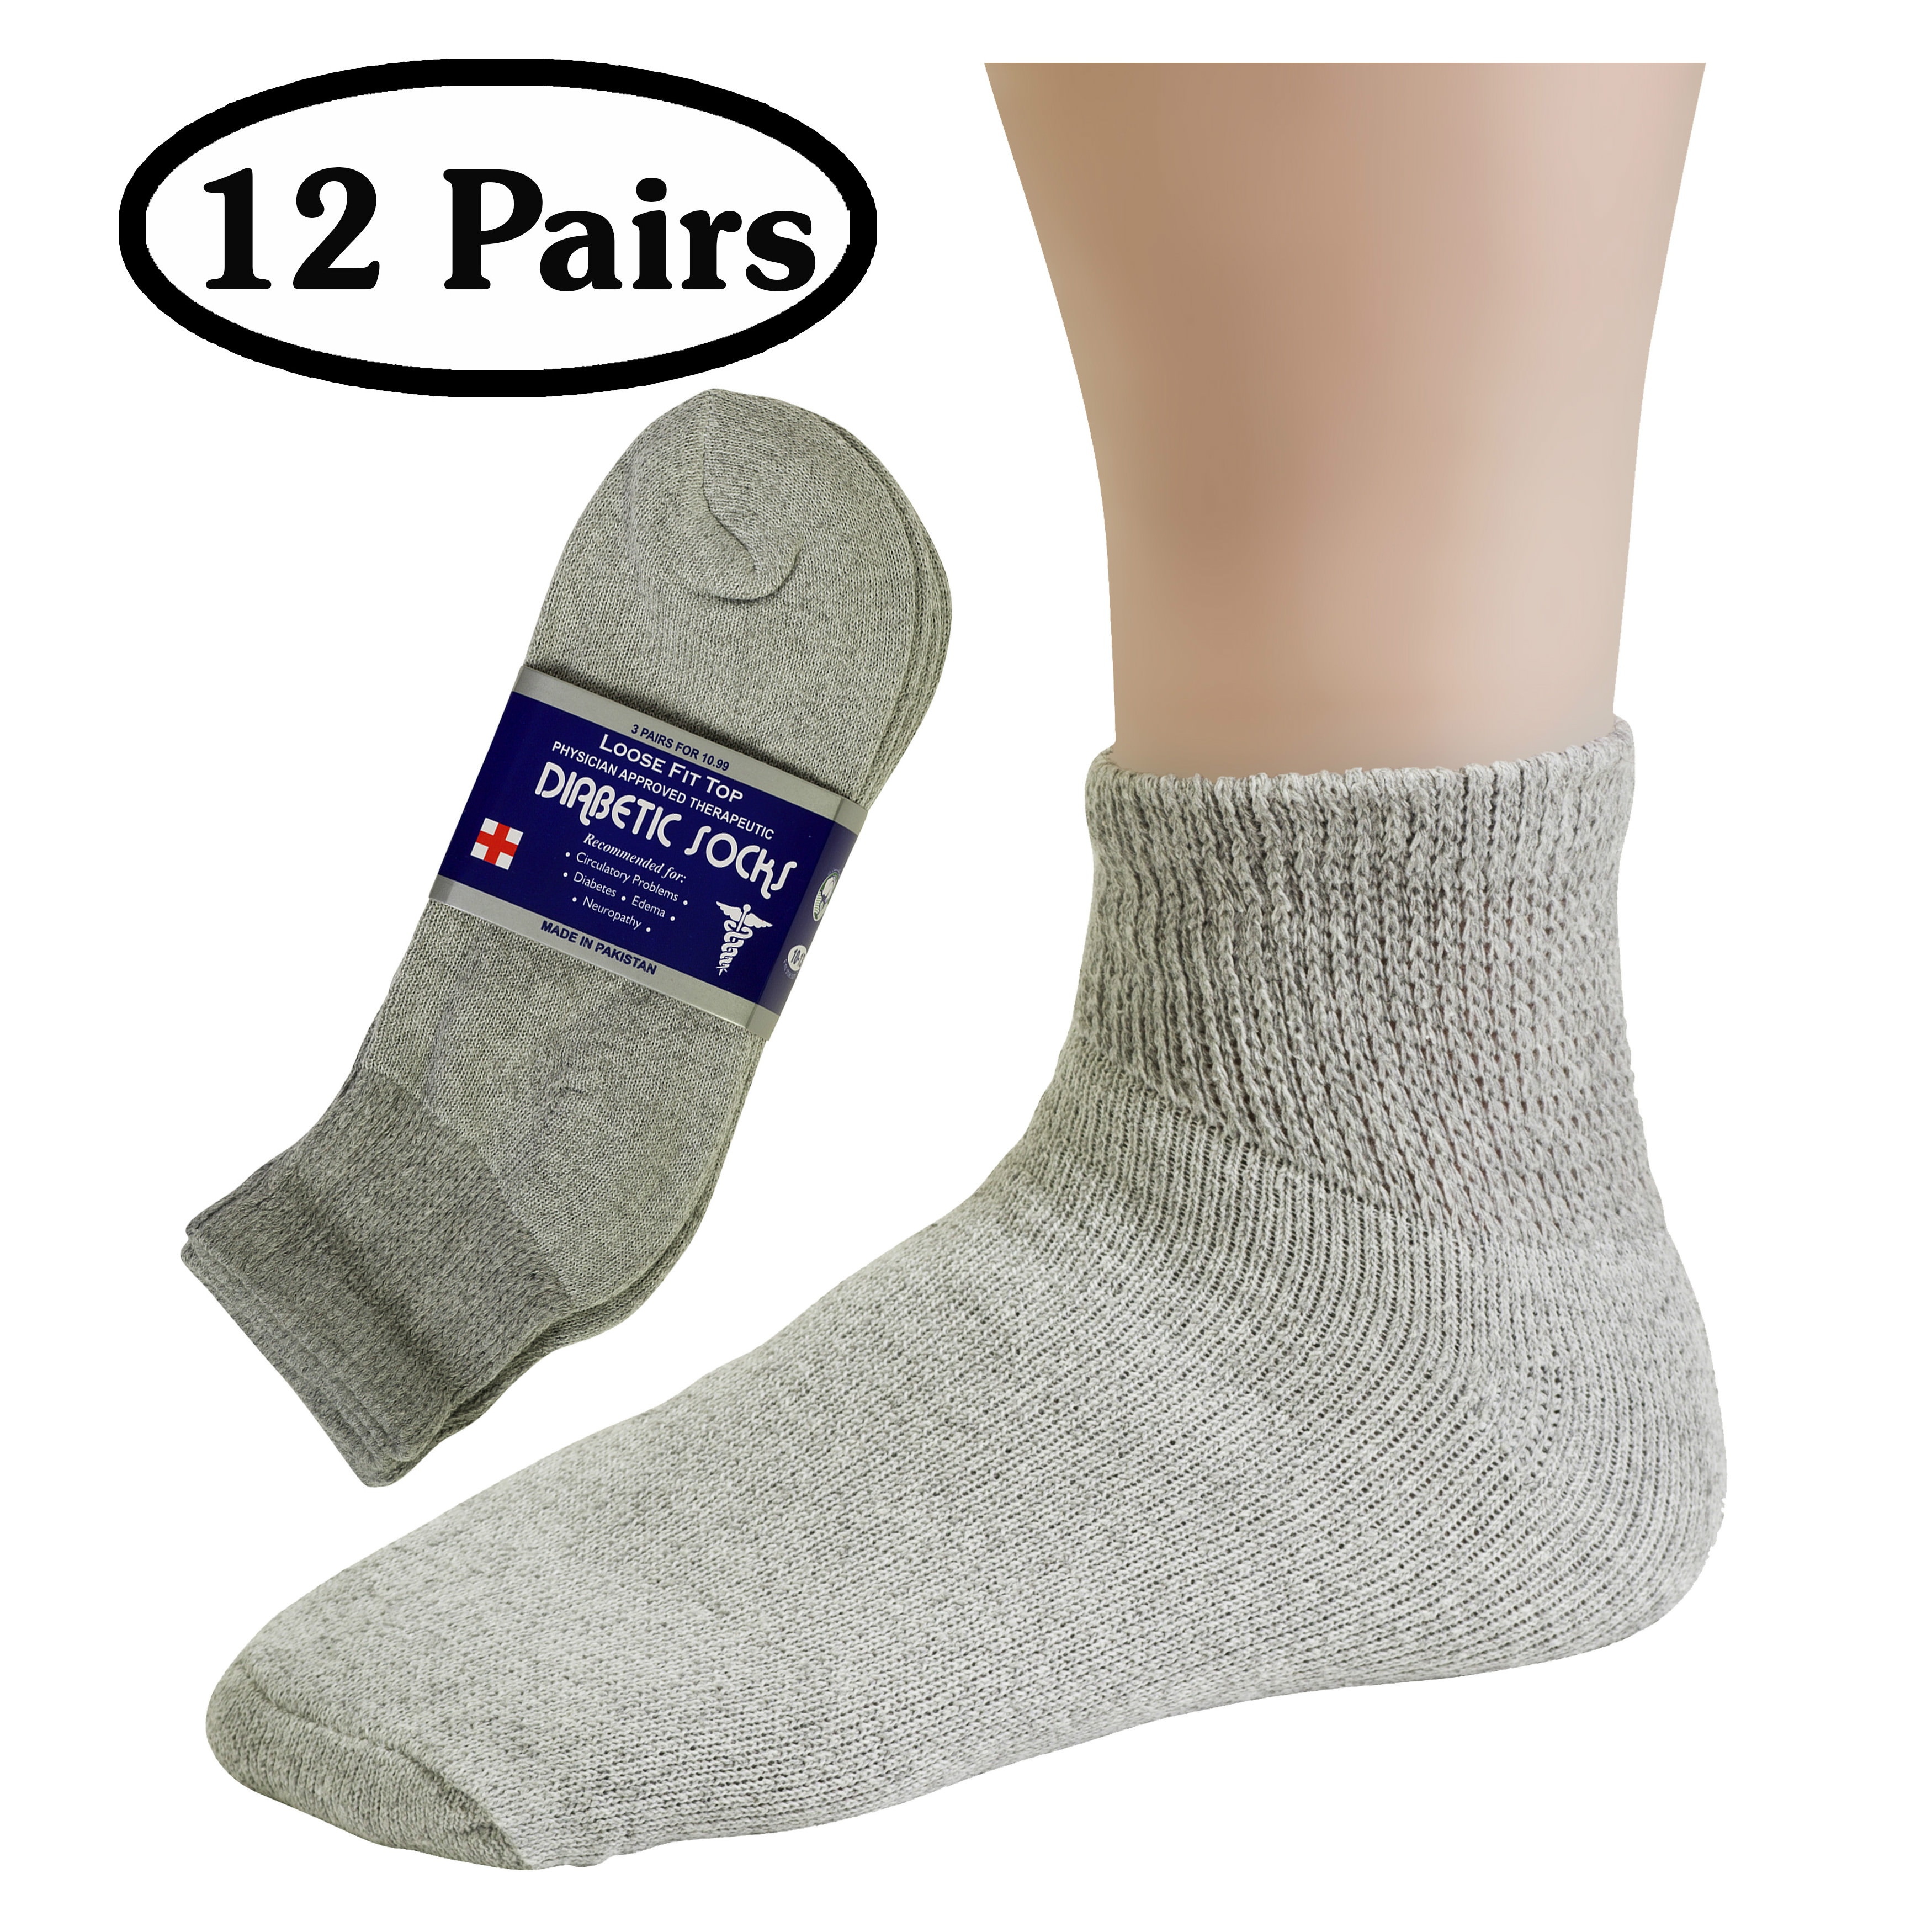 NEW! 6 //12  Pair Black Non-Binding Top DIABETIC Plus Size13-15 Ankle Socks 3